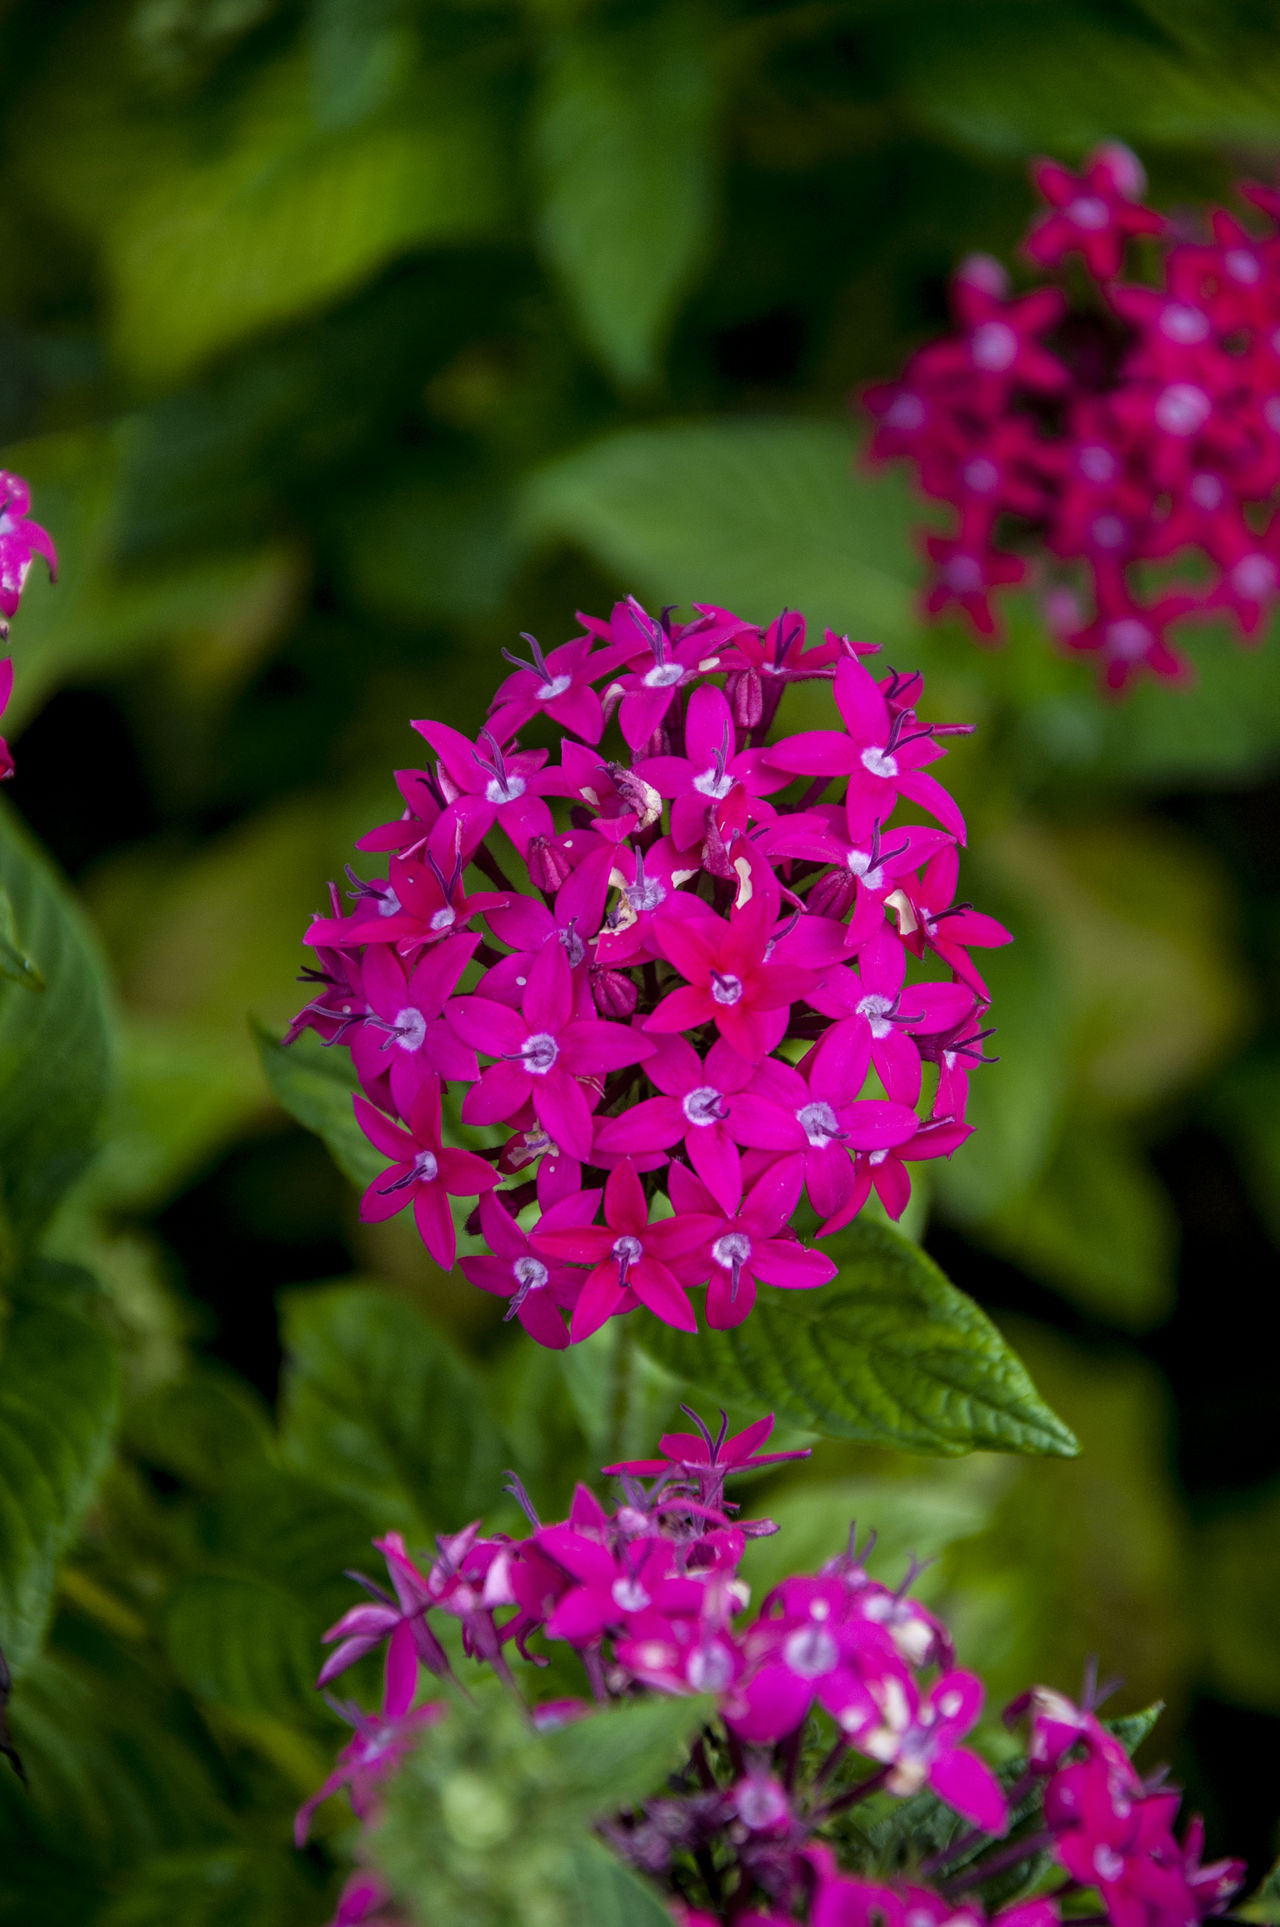 Blooming Flower Freshness Ixora Nature Nature Photography Nature Photography EyeEm Best Shots Pink Color Plant Santan